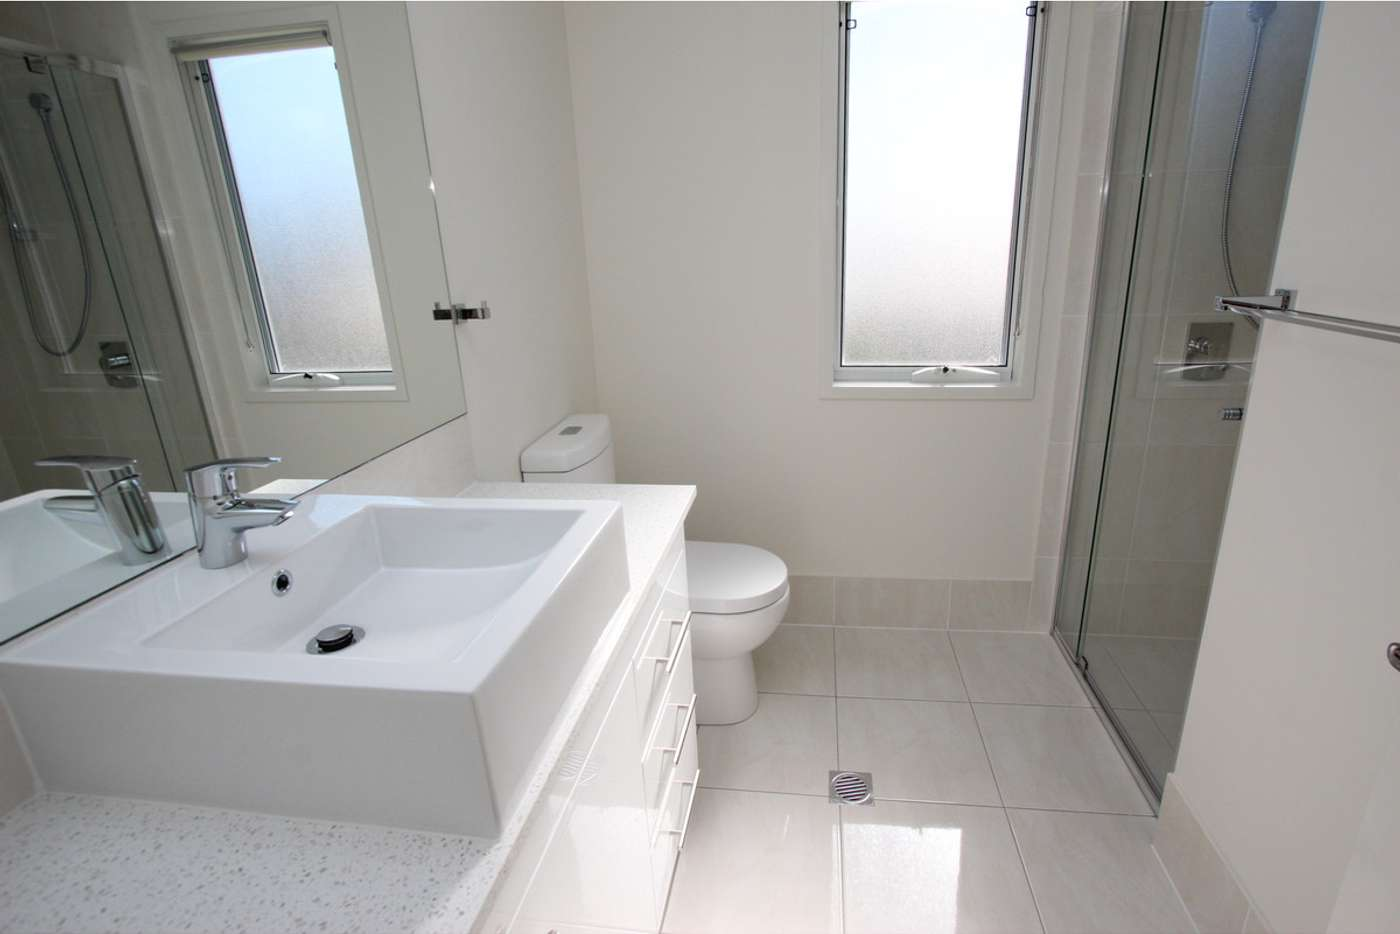 Sixth view of Homely townhouse listing, 31 Helles Street, Moorooka QLD 4105